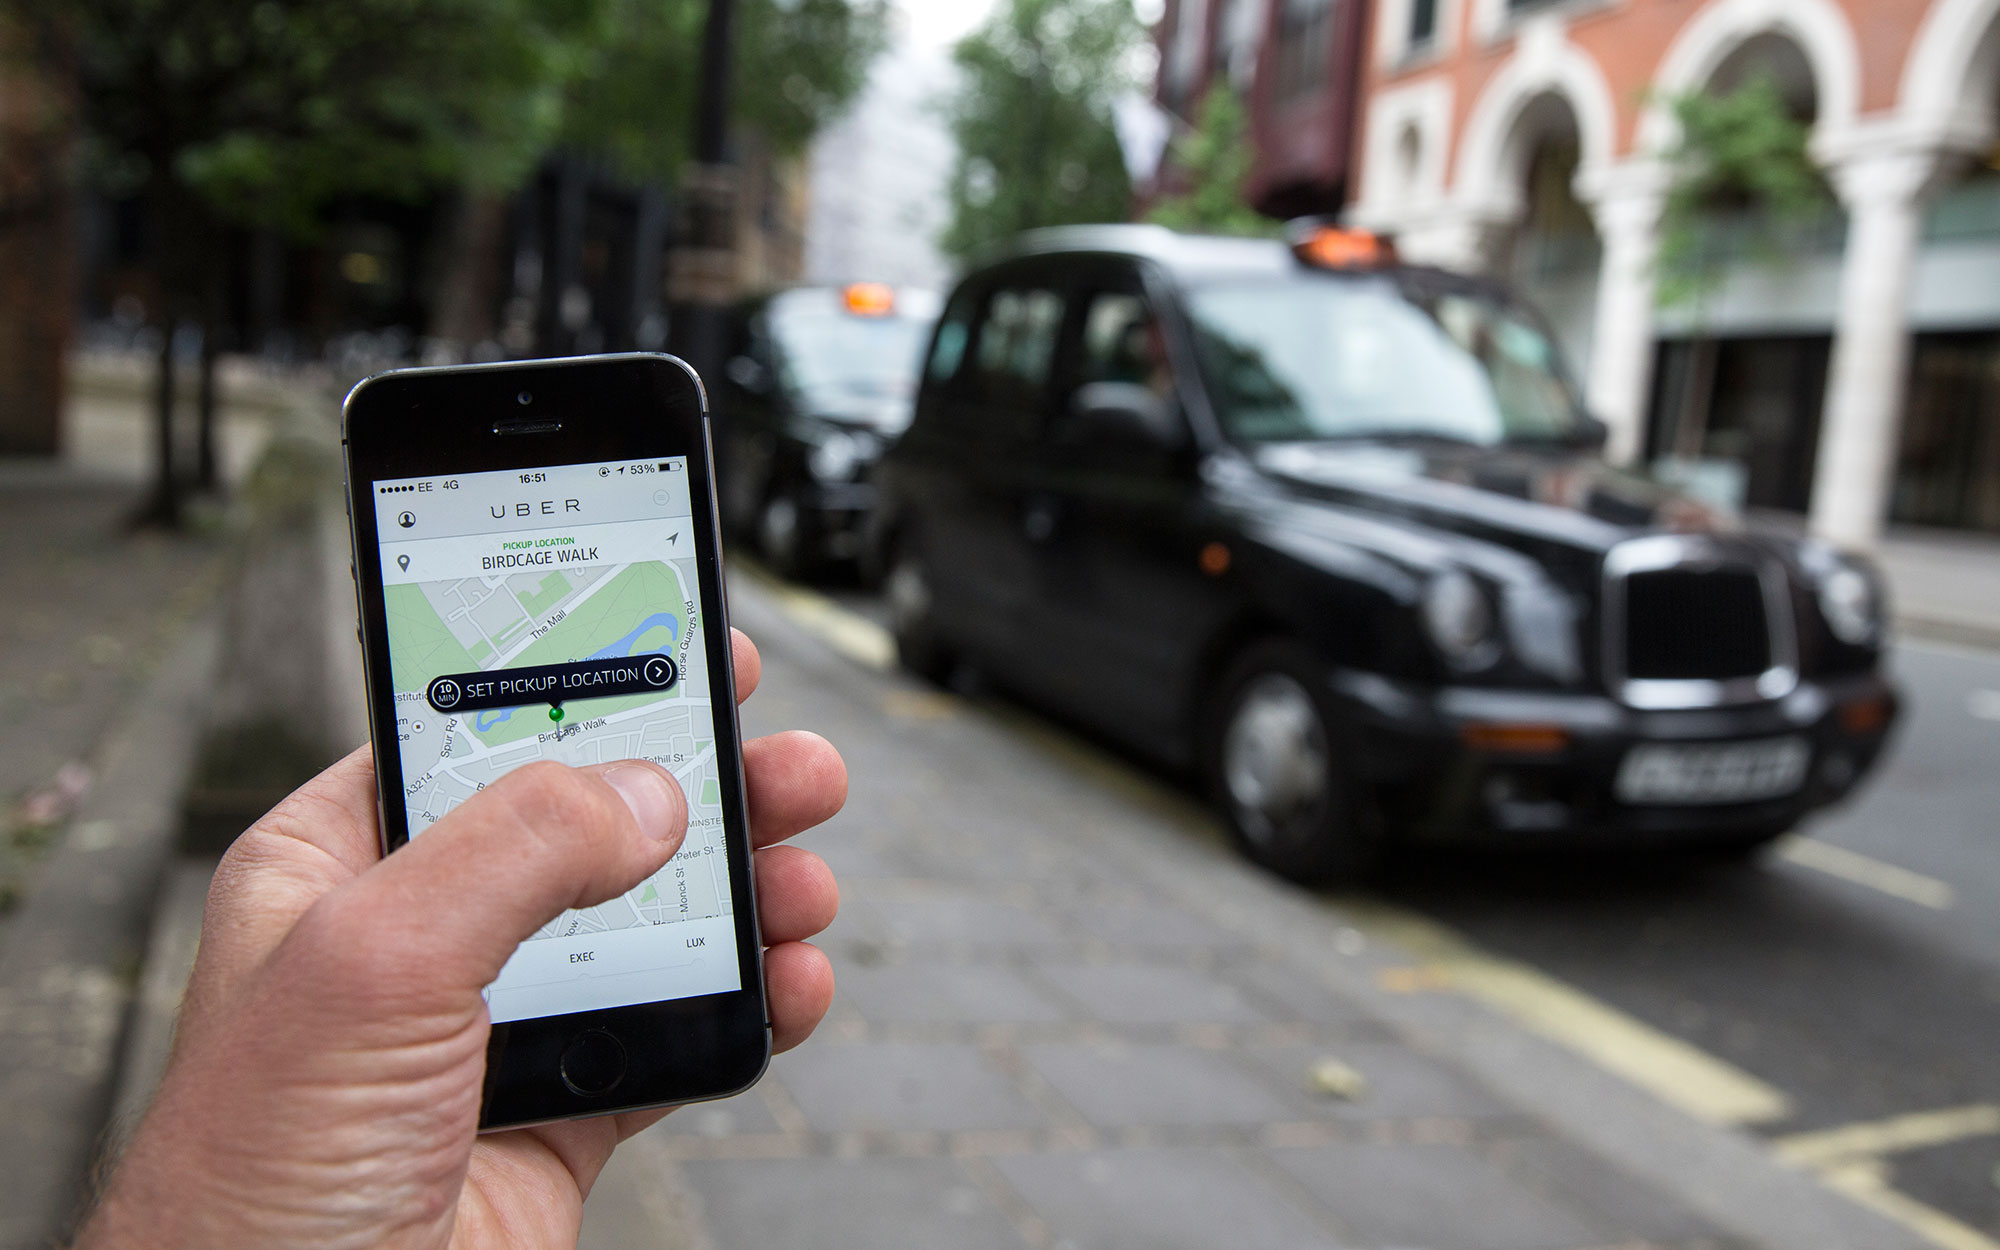 Uber vs. the Rental Car: Which is Cheaper?